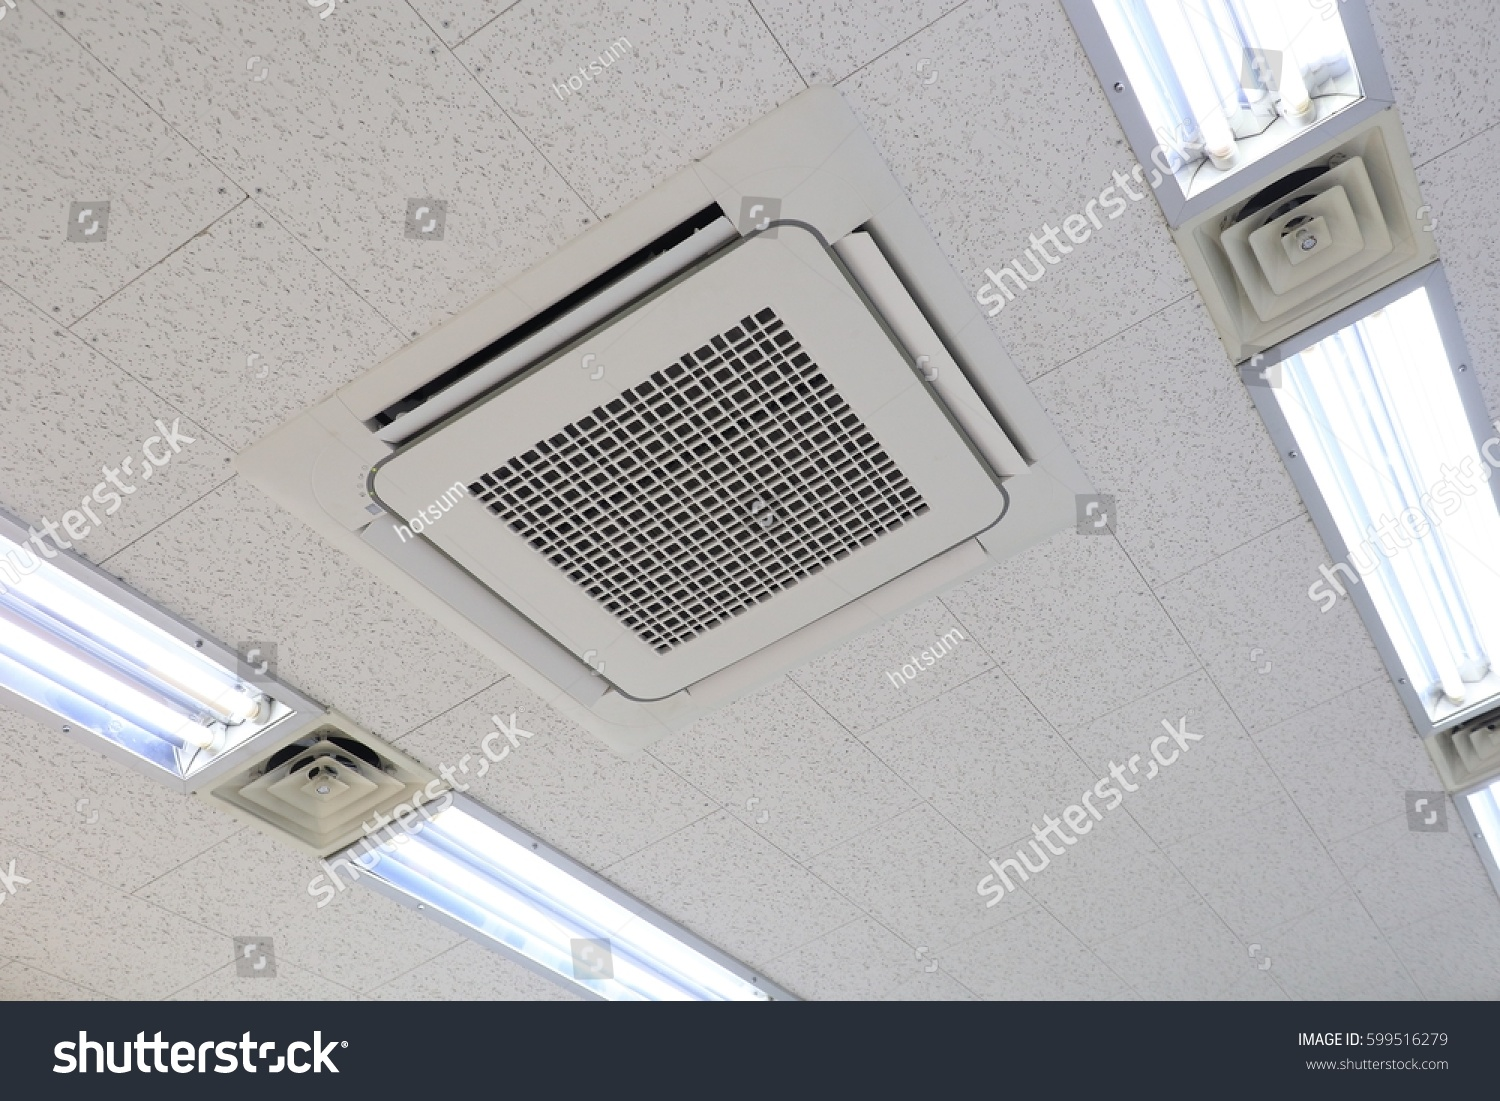 Ceiling Mounted Air Conditioning System Stock